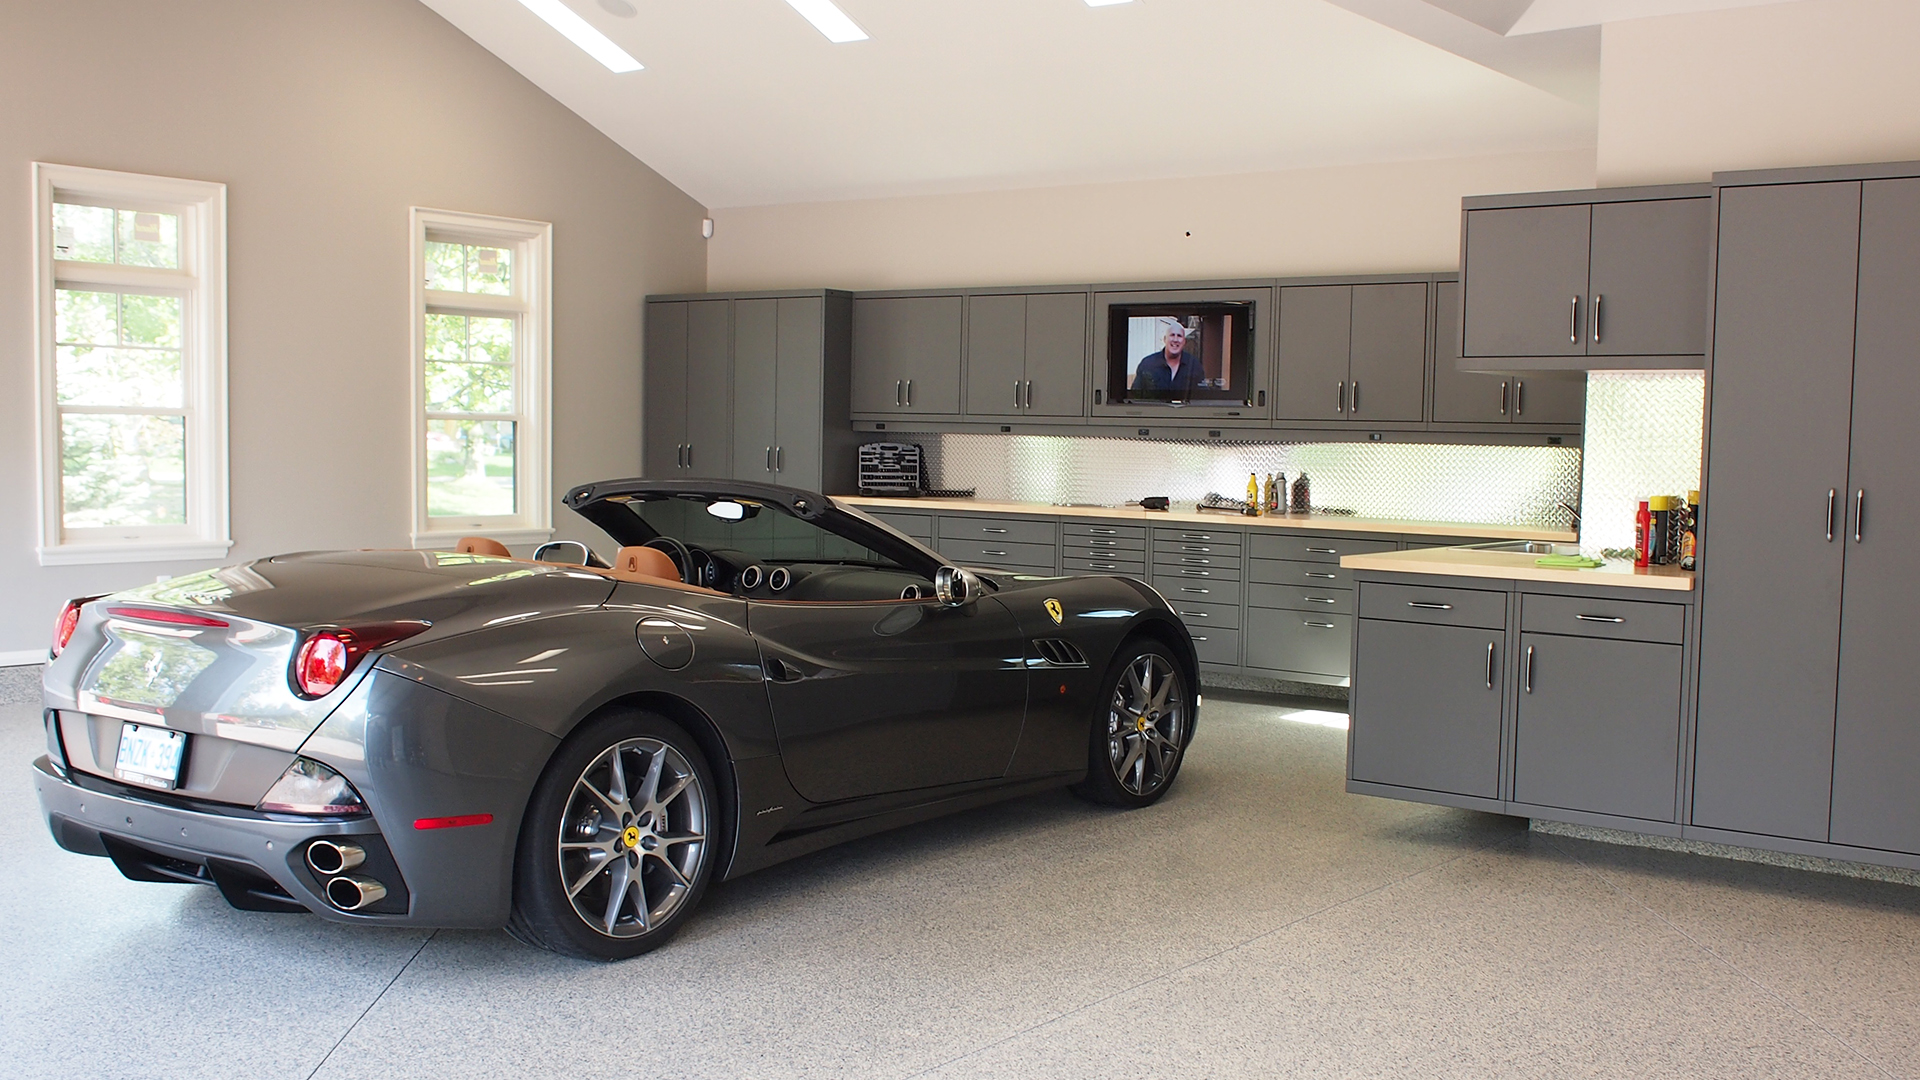 Garage with a Ferrari California. Virtual background to use on Zoom, Microsoft Teams, Skype, Google Meet, WebEx or any other compatible app.